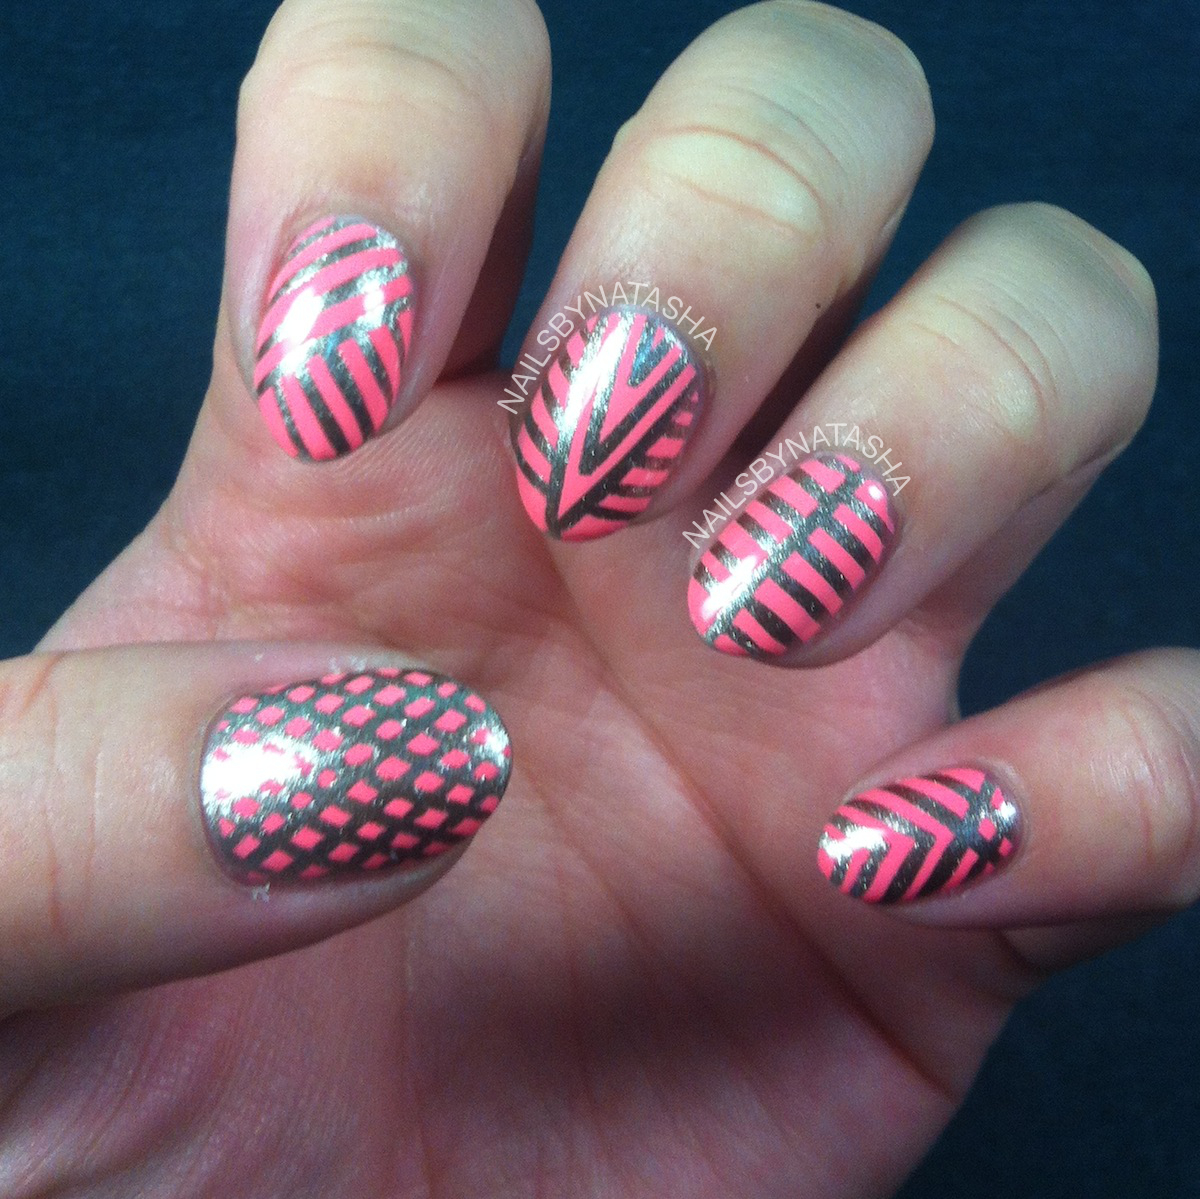 Nail Designs With Striping Tape: Nails By Natasha: First Striping Tape Designs